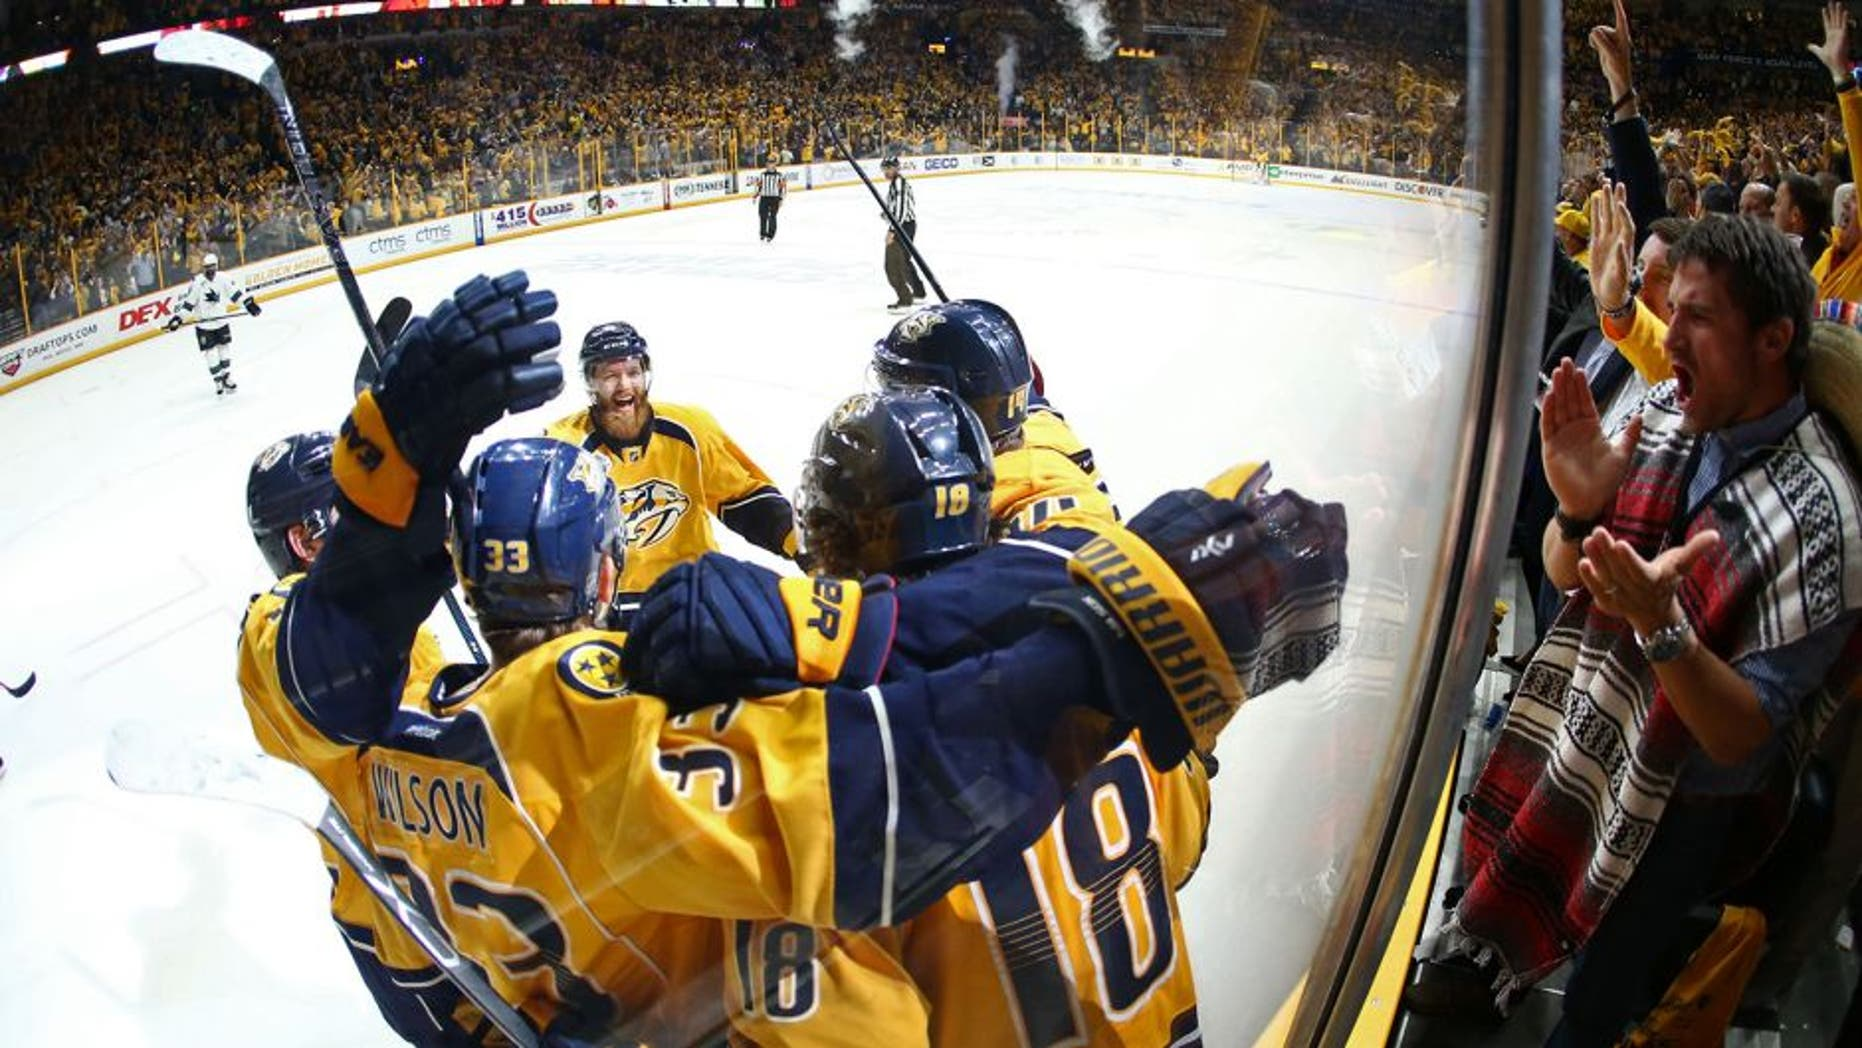 May 5, 2016; Nashville, TN, USA; Nashville Predators left wing James Neal (18) celebrates with teammates along the boards after scoring a goal against the San Jose Sharks during the third period in game four of the second round of the 2016 Stanley Cup Playoffs at Bridgestone Arena. Mandatory Credit: Aaron Doster-USA TODAY Sports